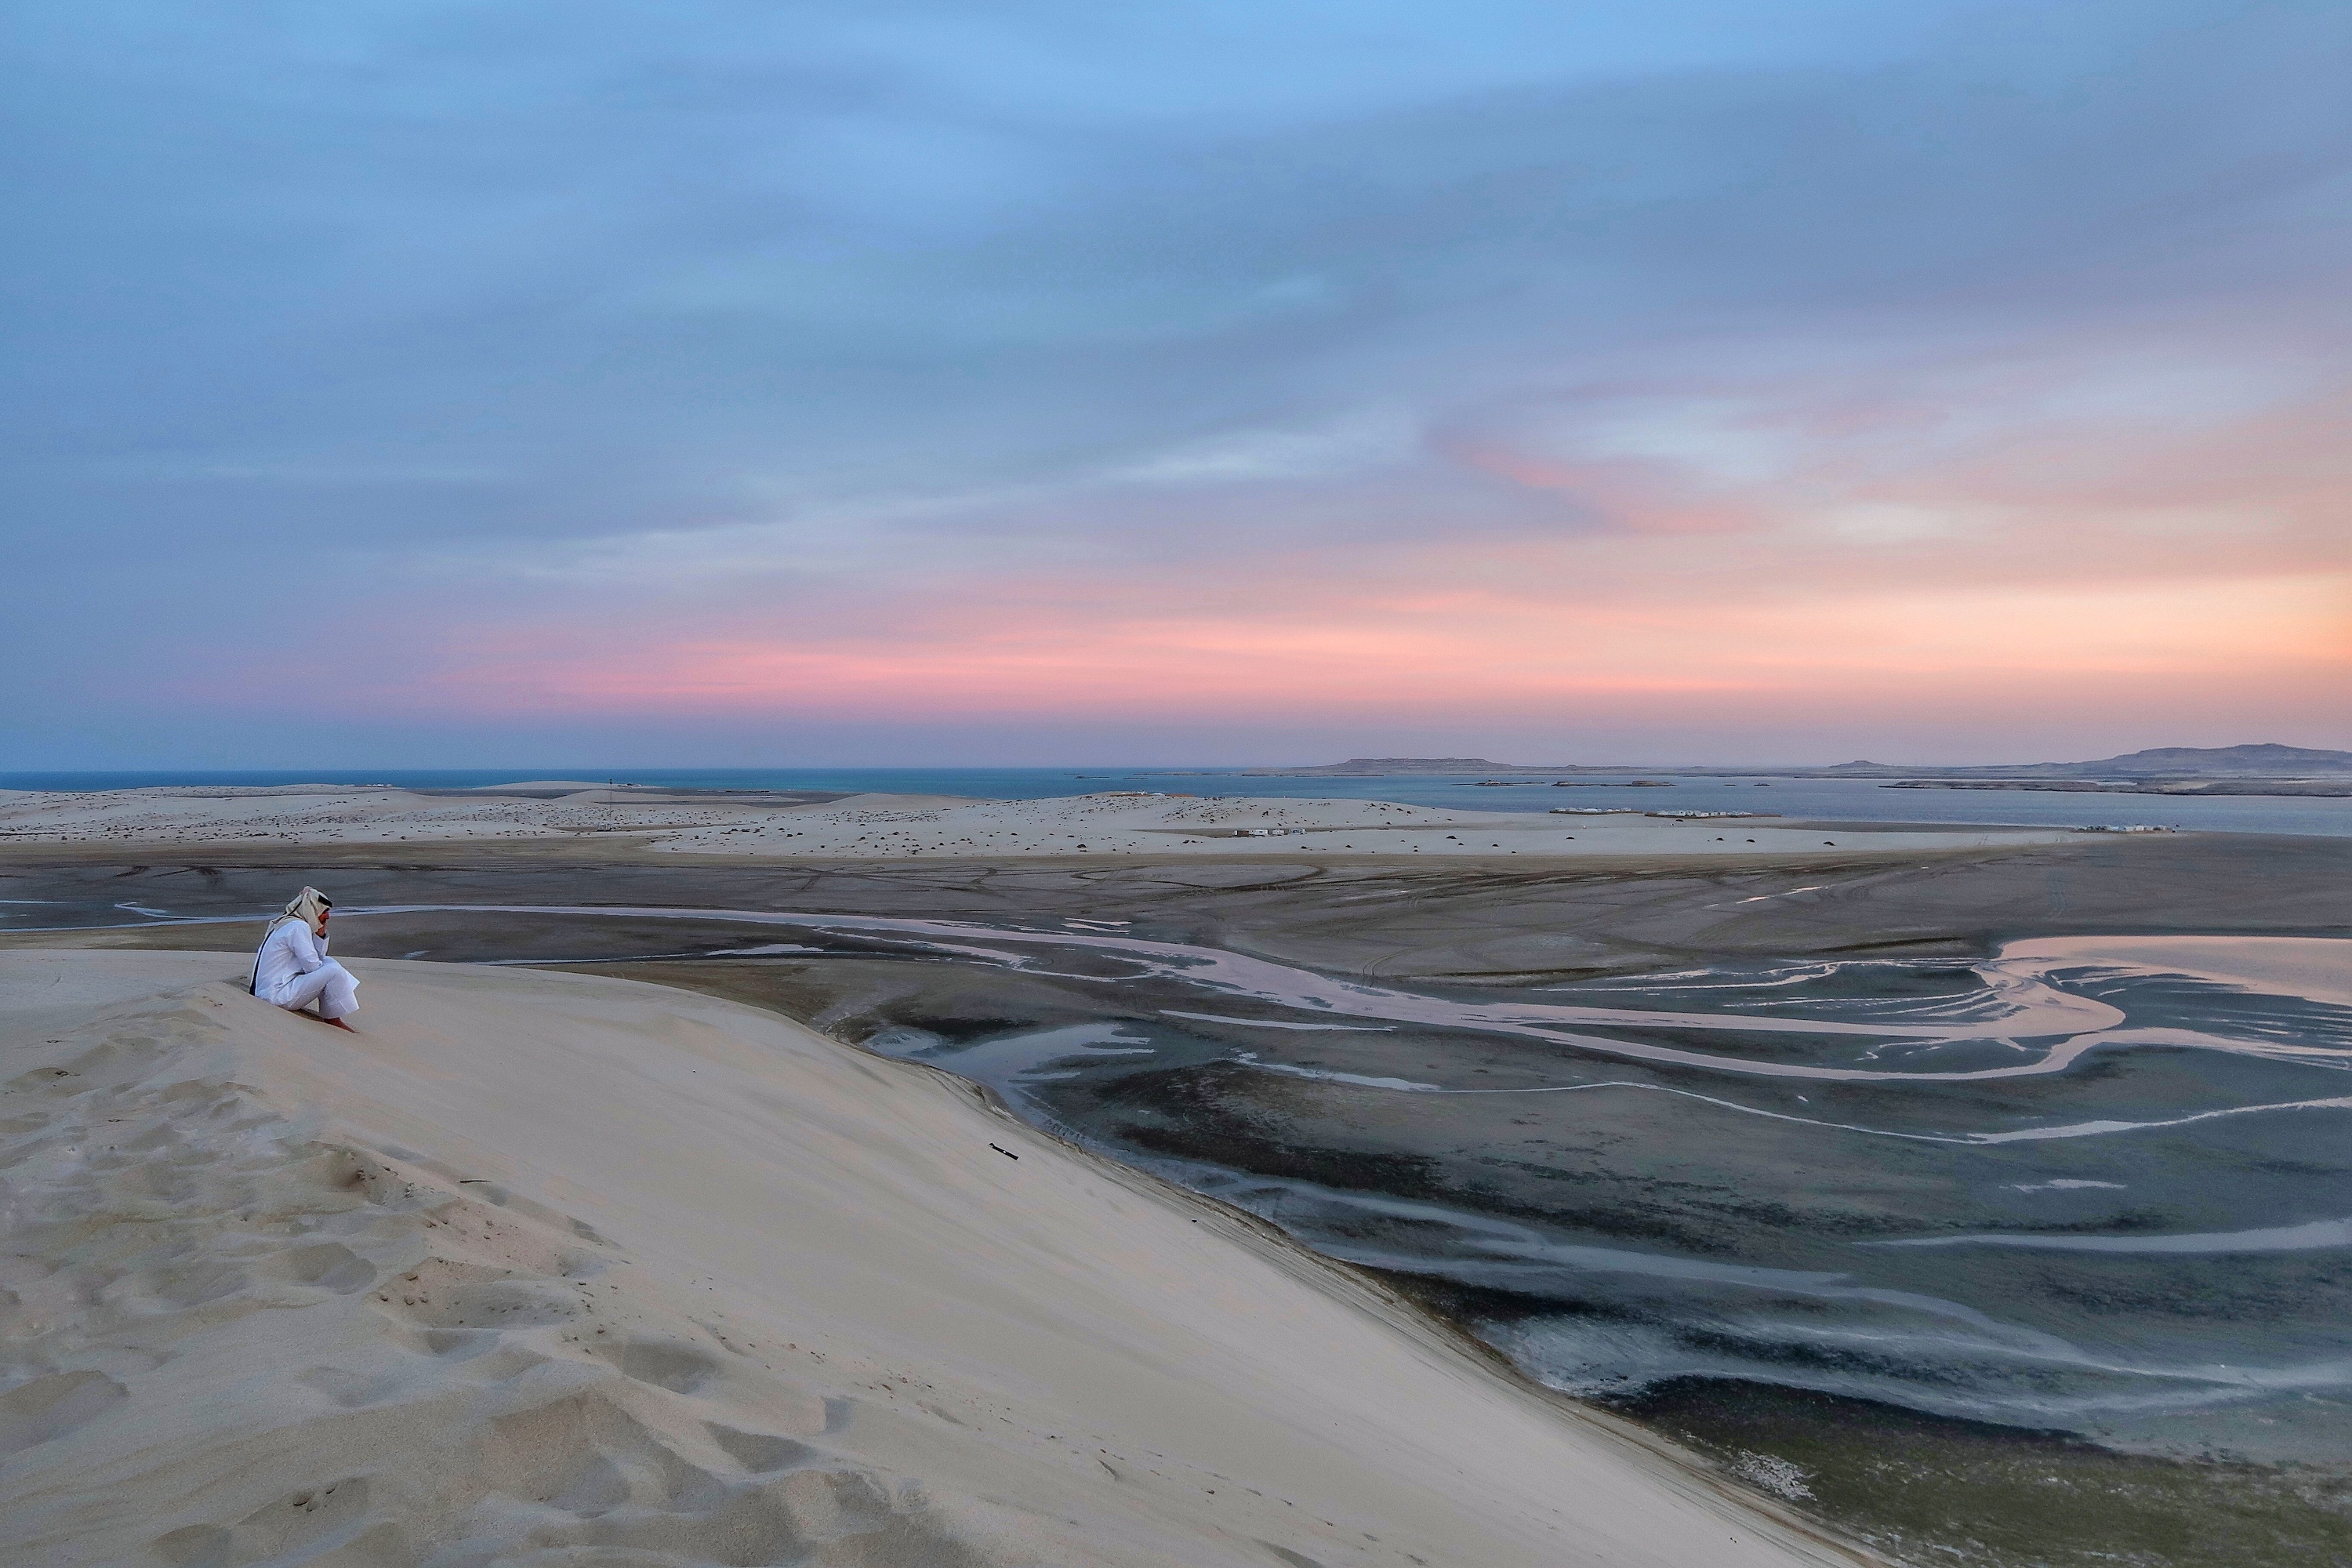 Desert Sunset over Doha and Saudi Arabia | Visit Qatar | Doha, the capital of Qatar is located in the Middle East and the World Cup 2022 location. Find out how I spent 4 days on my visit to Qatar | Travel Guide & Tips | Elle Blonde Luxury Lifestyle Destination Blog